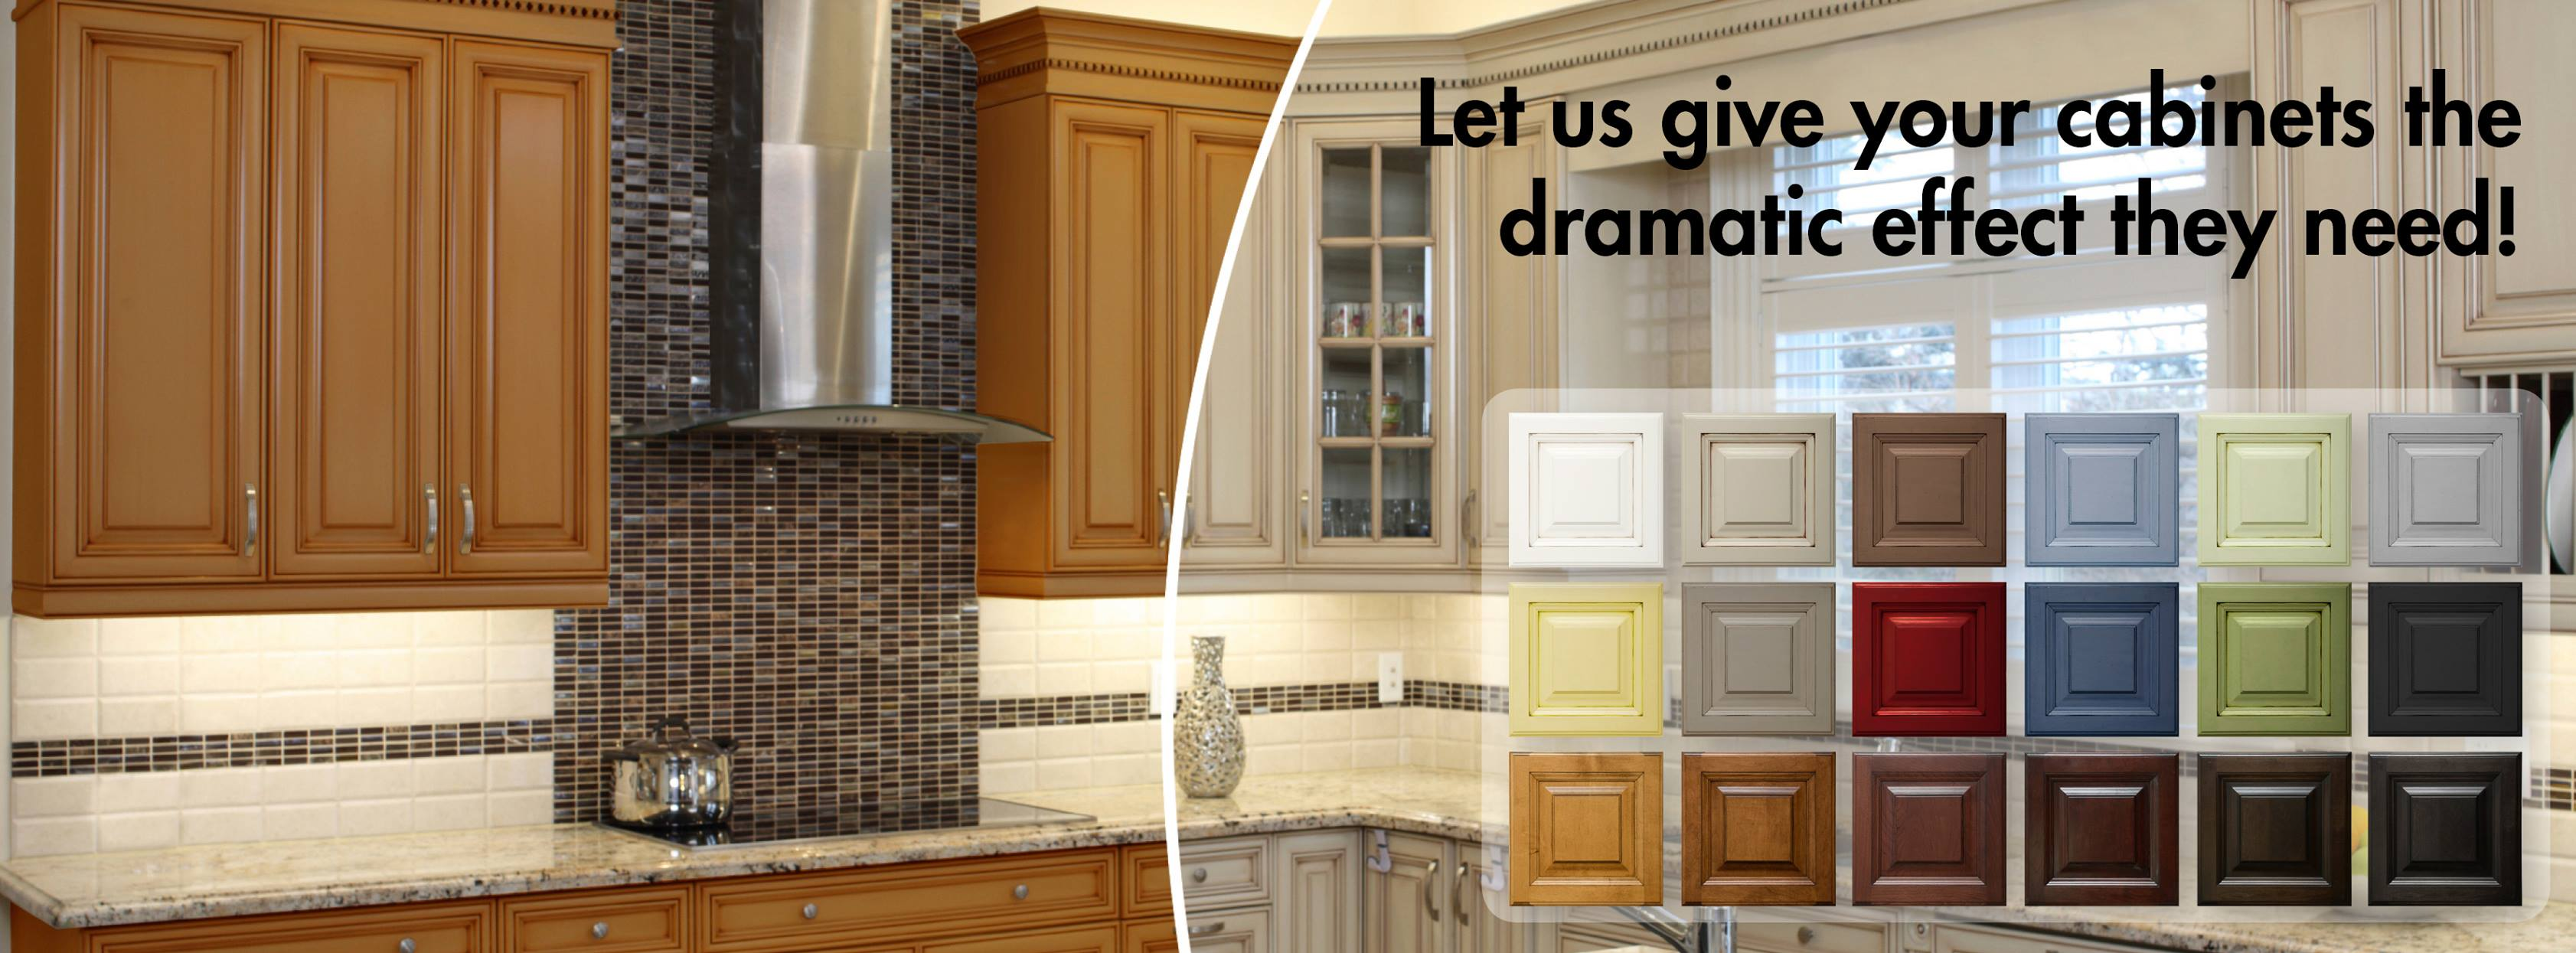 Gold Standard In Kitchen Cabinets Painting Refinishing Refacing And Remodeling Nhance Niagara ꟾ Kitchen Cabinet Refinishing Painting Refacing